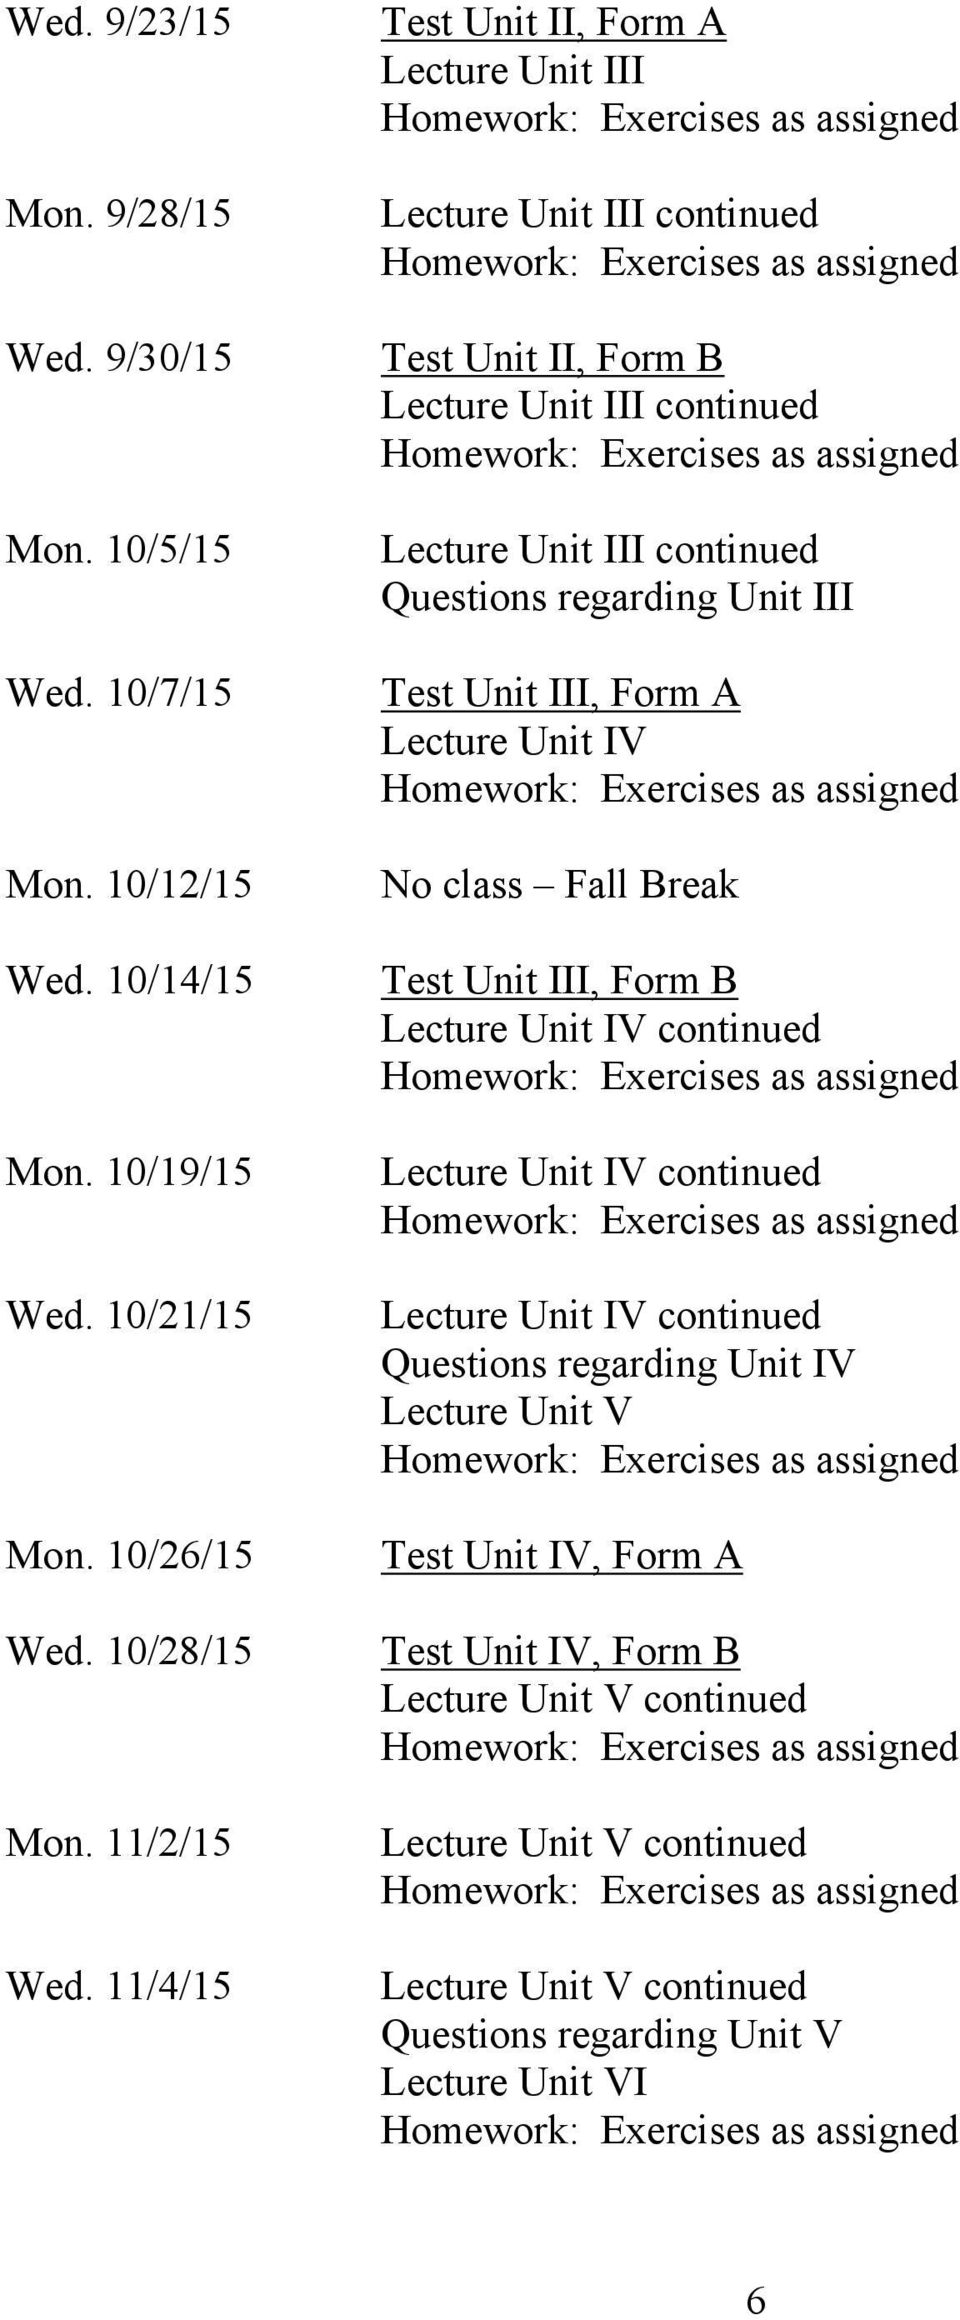 Test Unit III, Form A Lecture Unit IV No class Fall Break Test Unit III, Form B Lecture Unit IV continued Lecture Unit IV continued Lecture Unit IV continued Questions